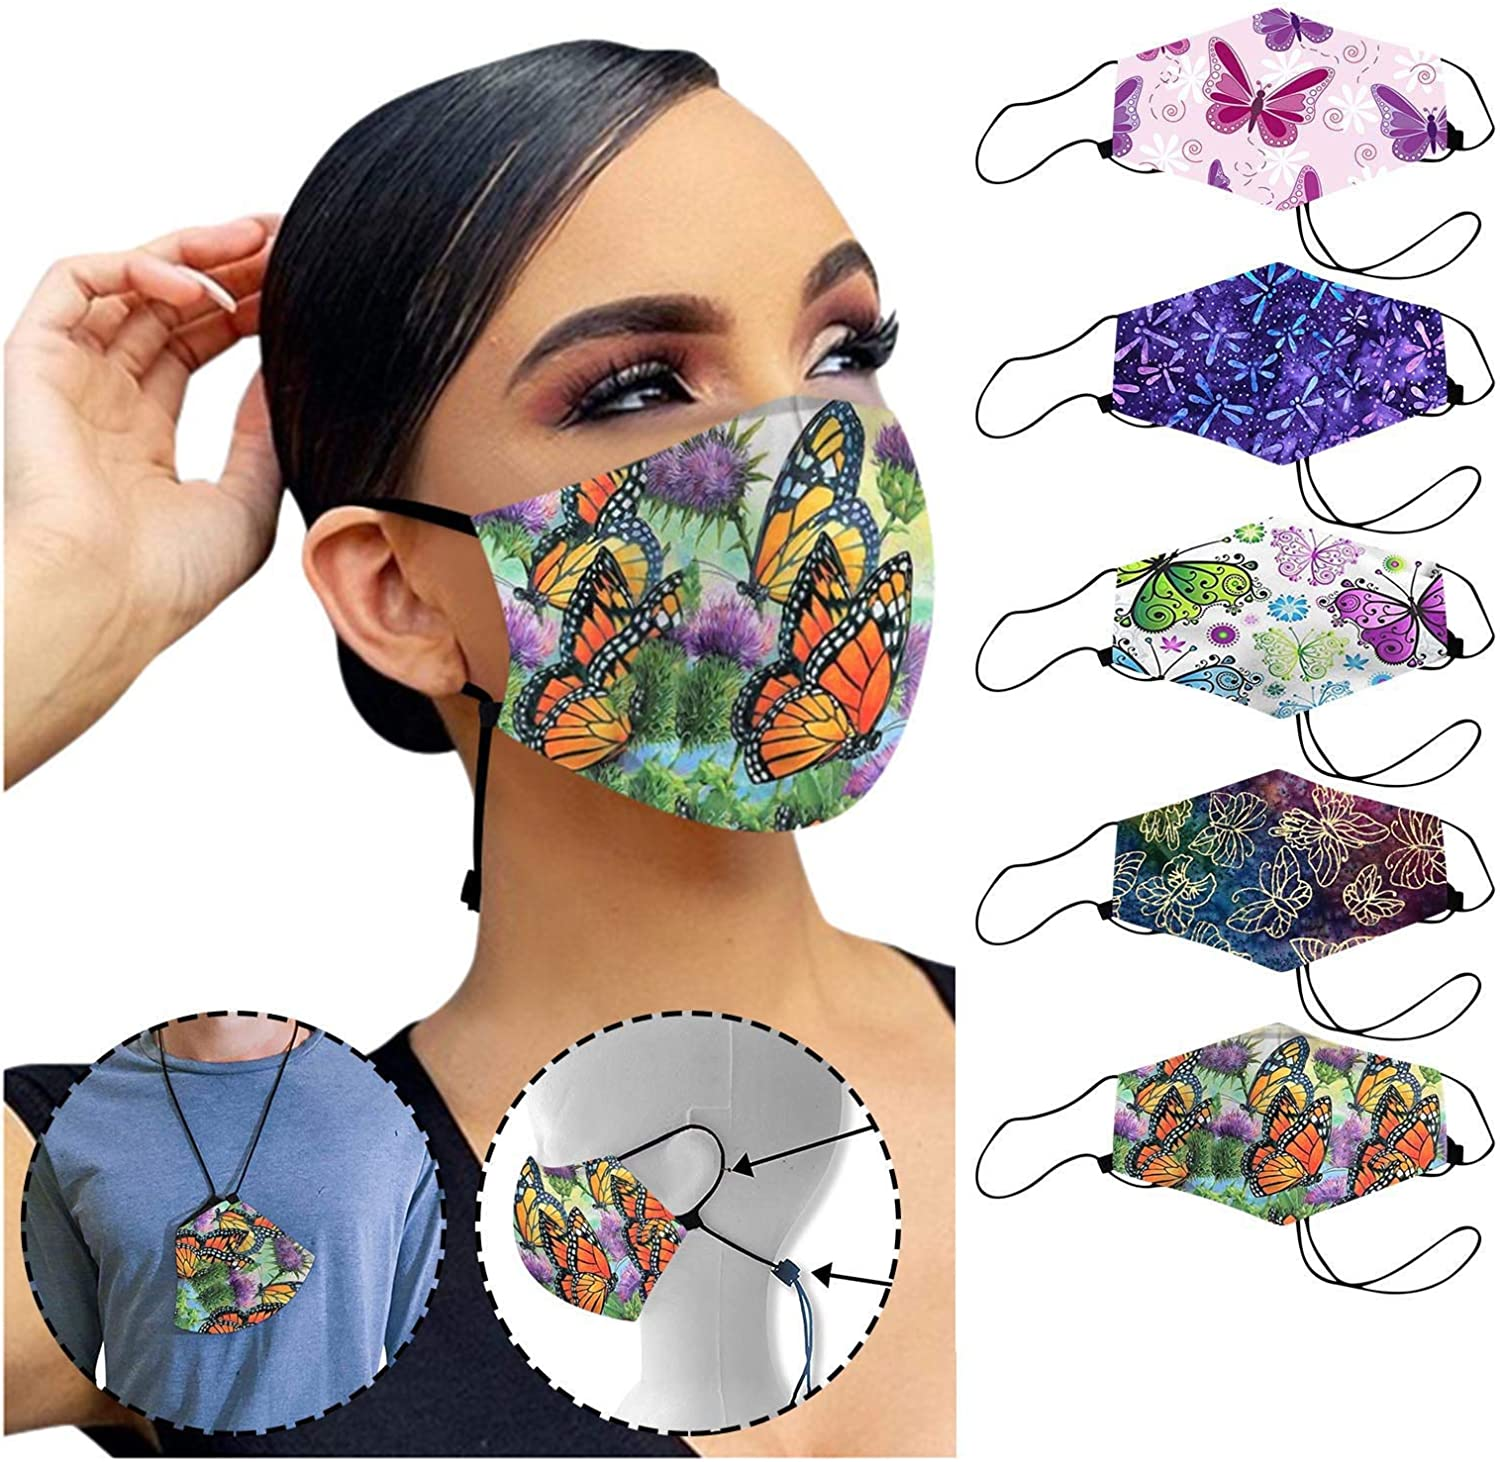 Stylish Cloth Cotton Mouth, Women Reusable Petal Printing Face Mouth with Filter Pocket, Adjustable Ear Loops